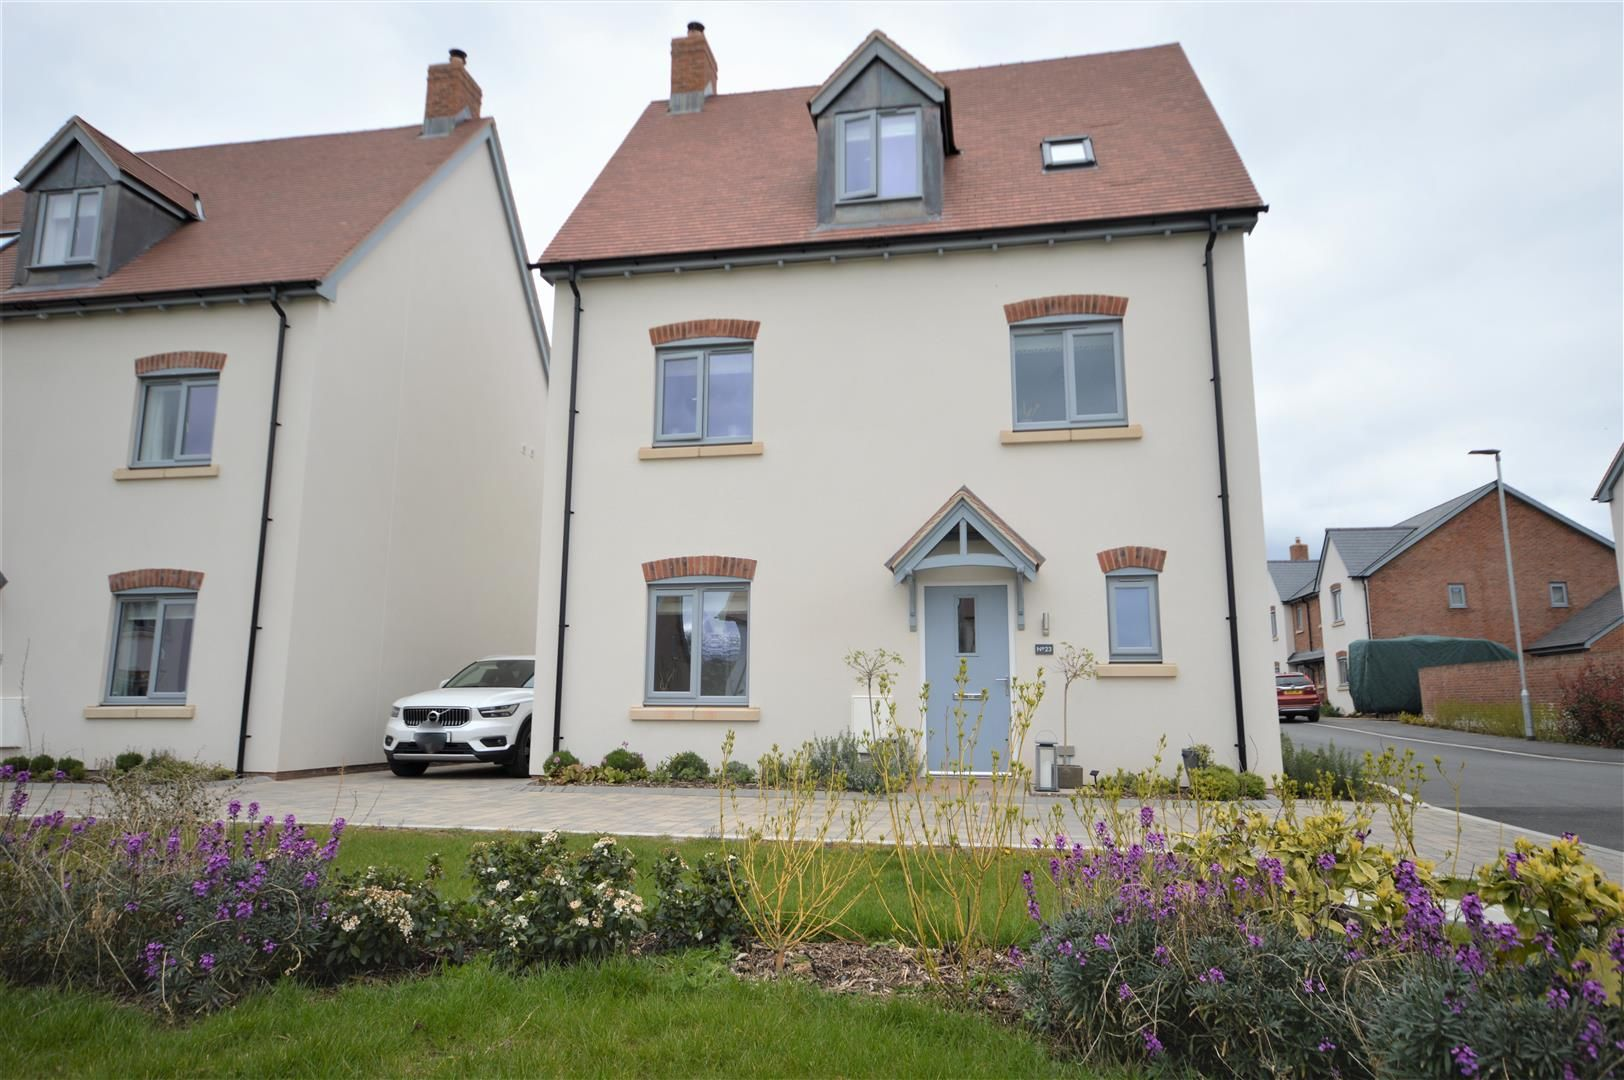 4 bed detached for sale in Weobley  - Property Image 24